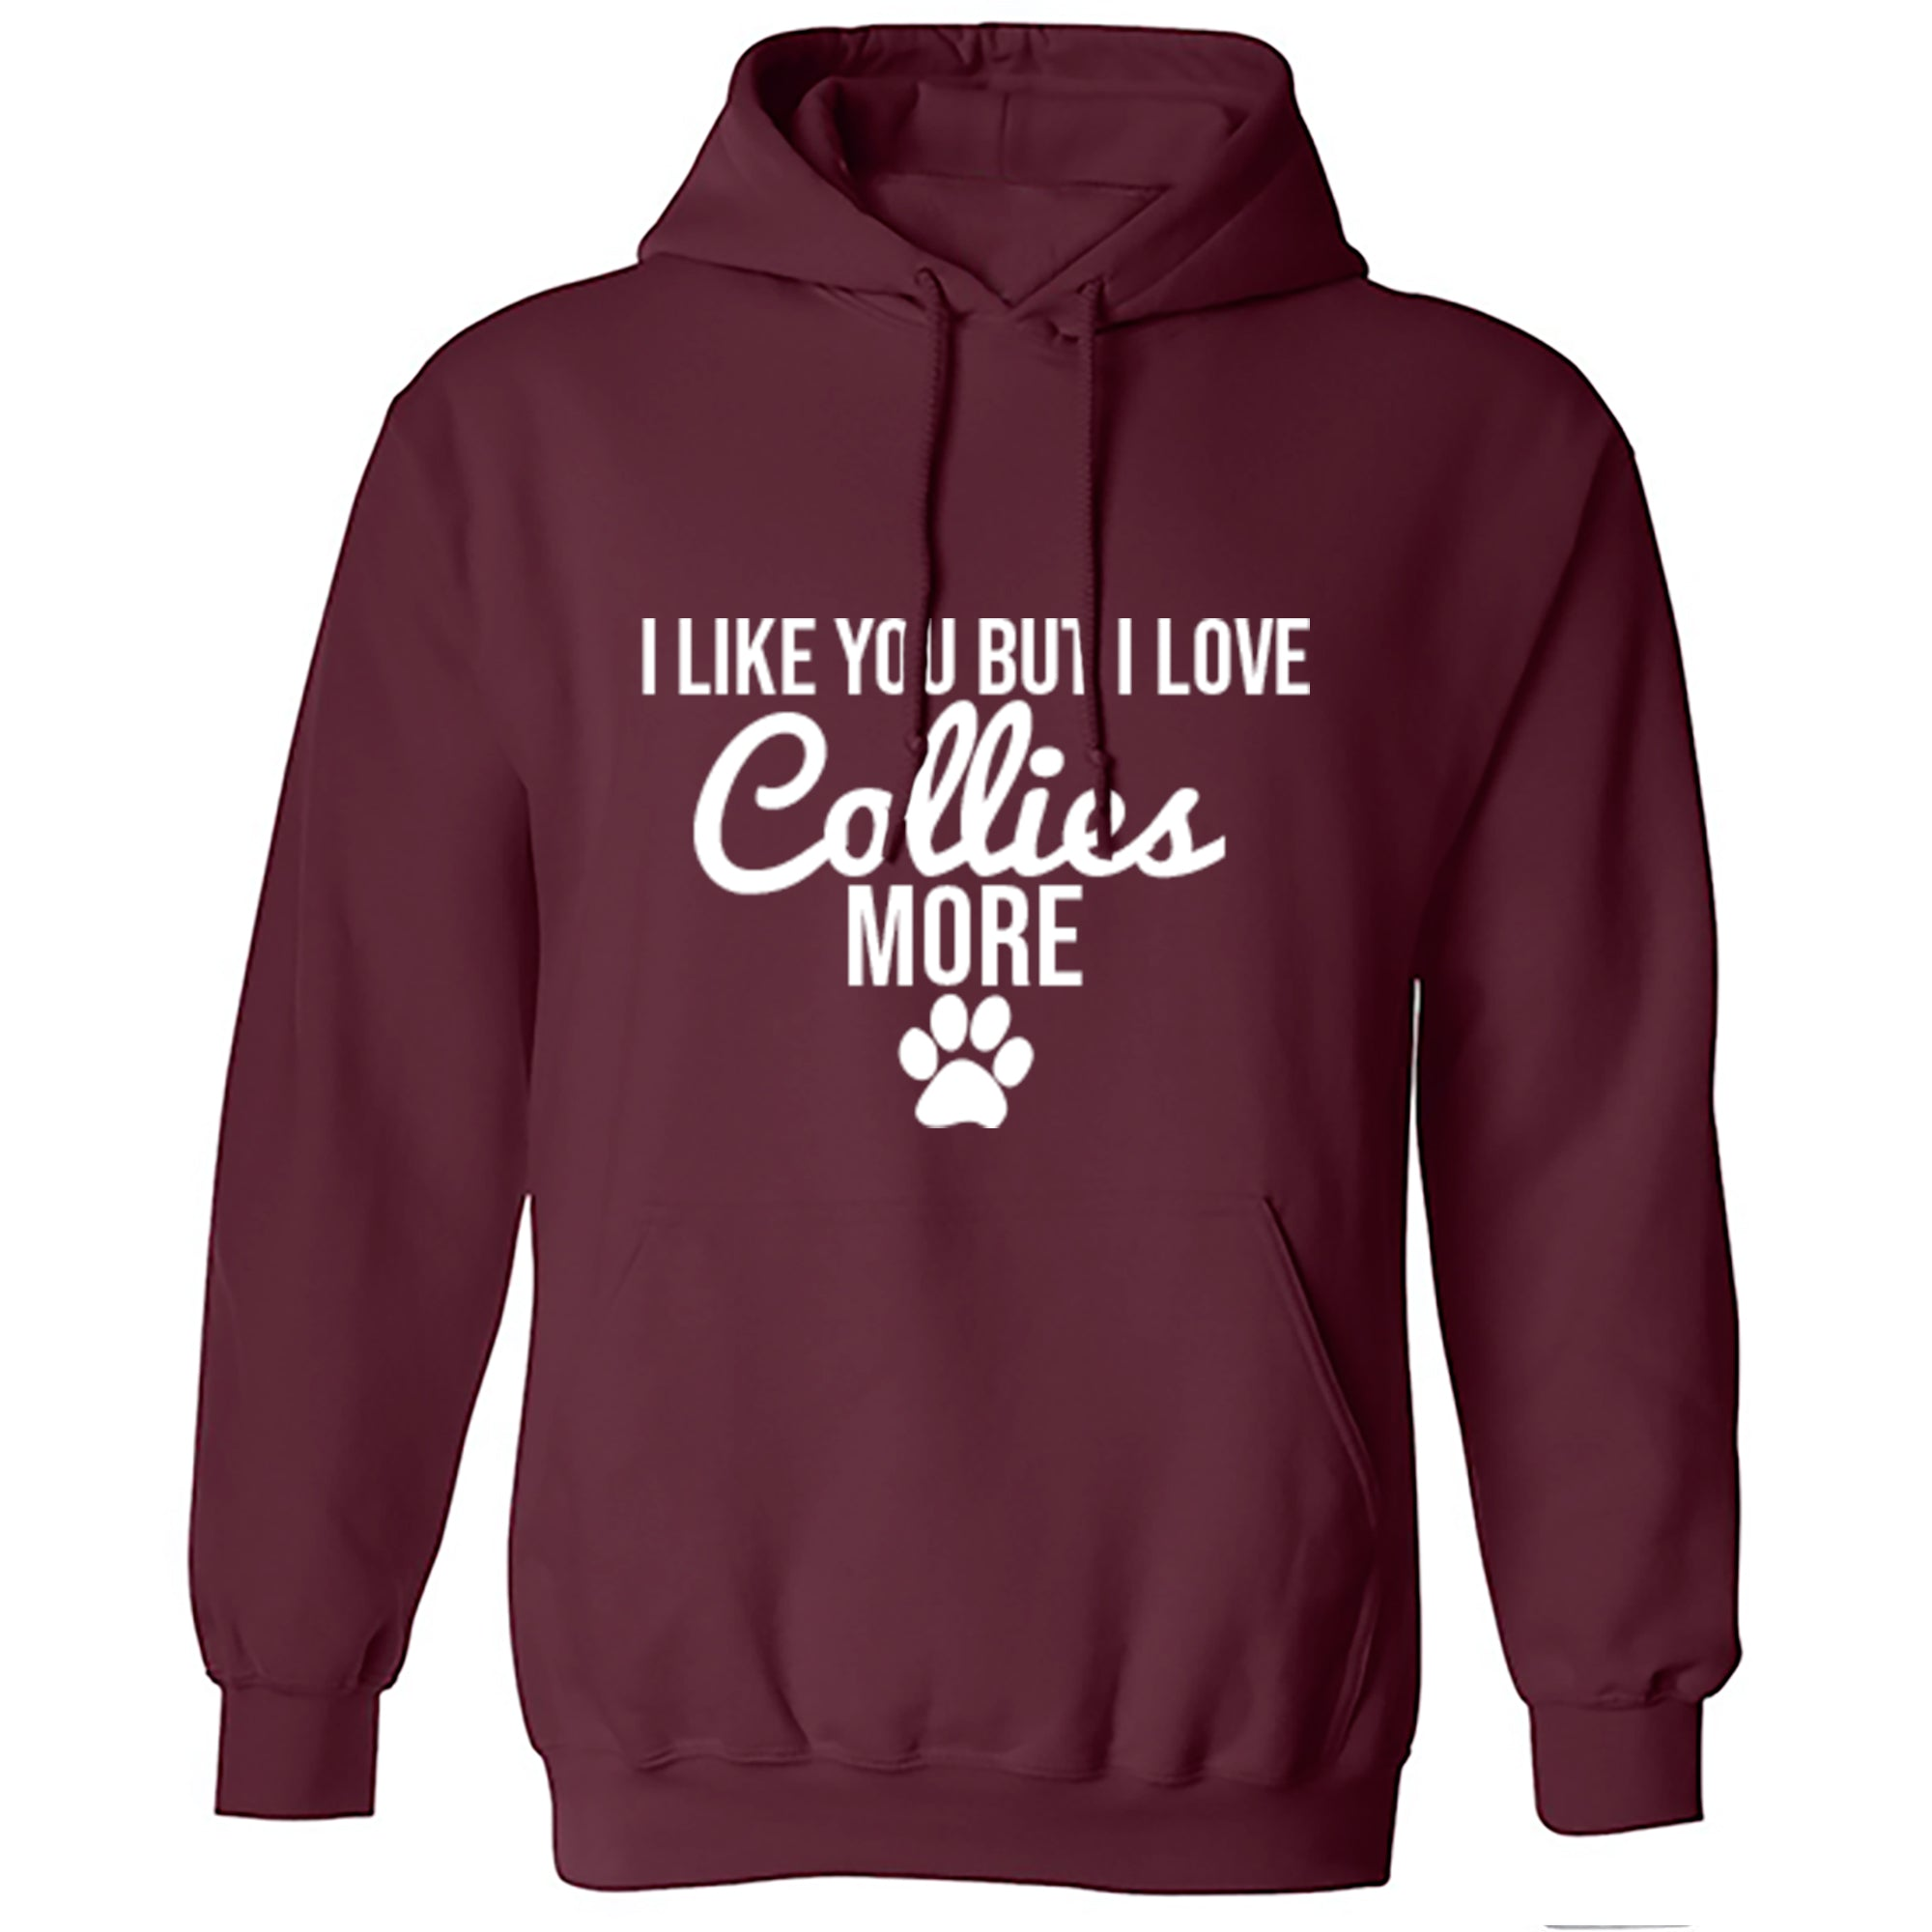 I Like You But I Love Collies More Unisex Hoodie S0096 - Illustrated Identity Ltd.